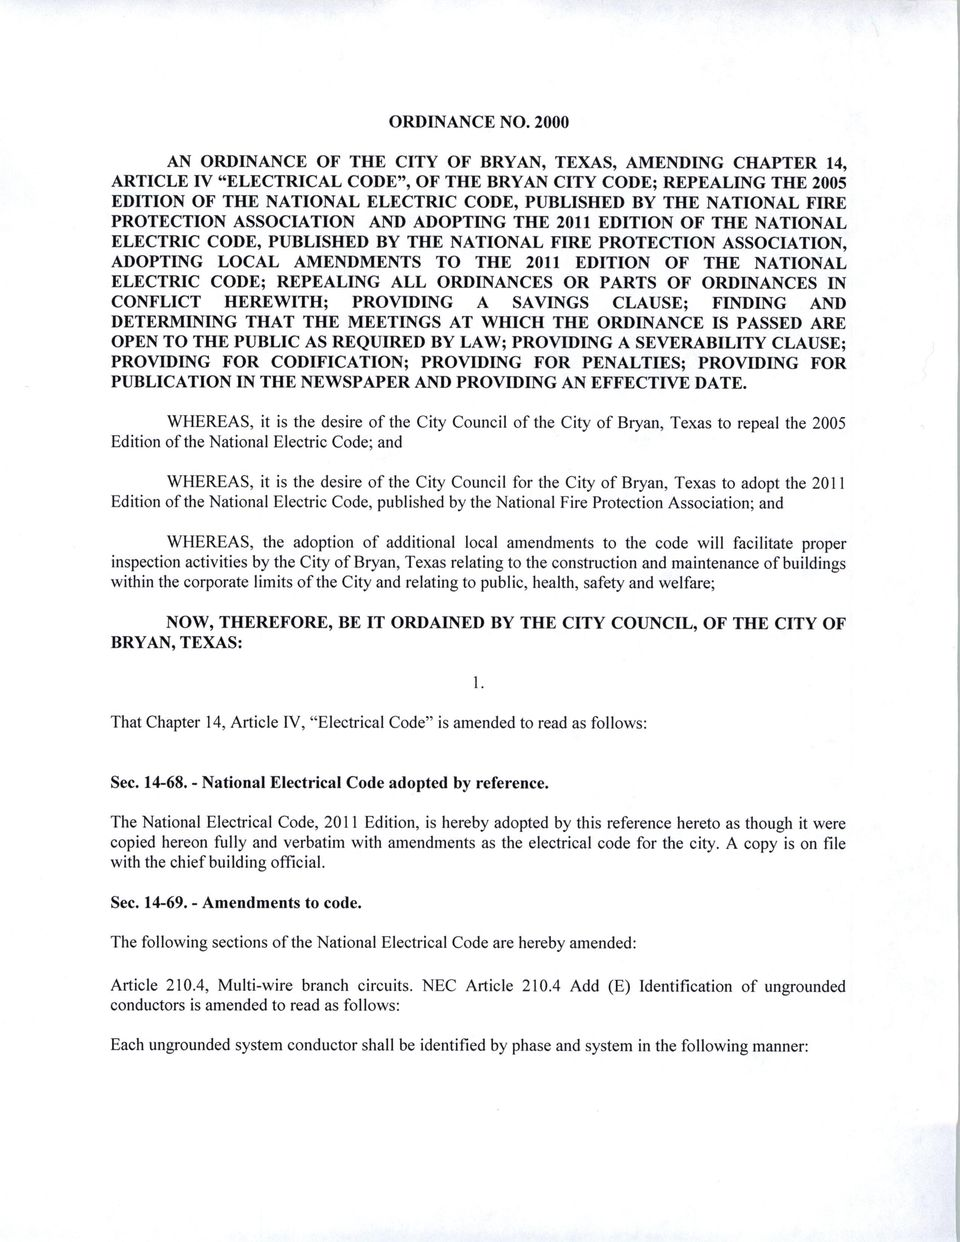 EDITION OF THE NATIONAL ELECTRIC CODE REPEALING ALL ORDINANCES OR PARTS OF ORDINANCES IN CONFLICT HEREWITH PROVIDING A SAVINGS CLAUSE FINDING AND DETERMINING THAT THE MEETINGS AT WHICH THE ORDINANCE